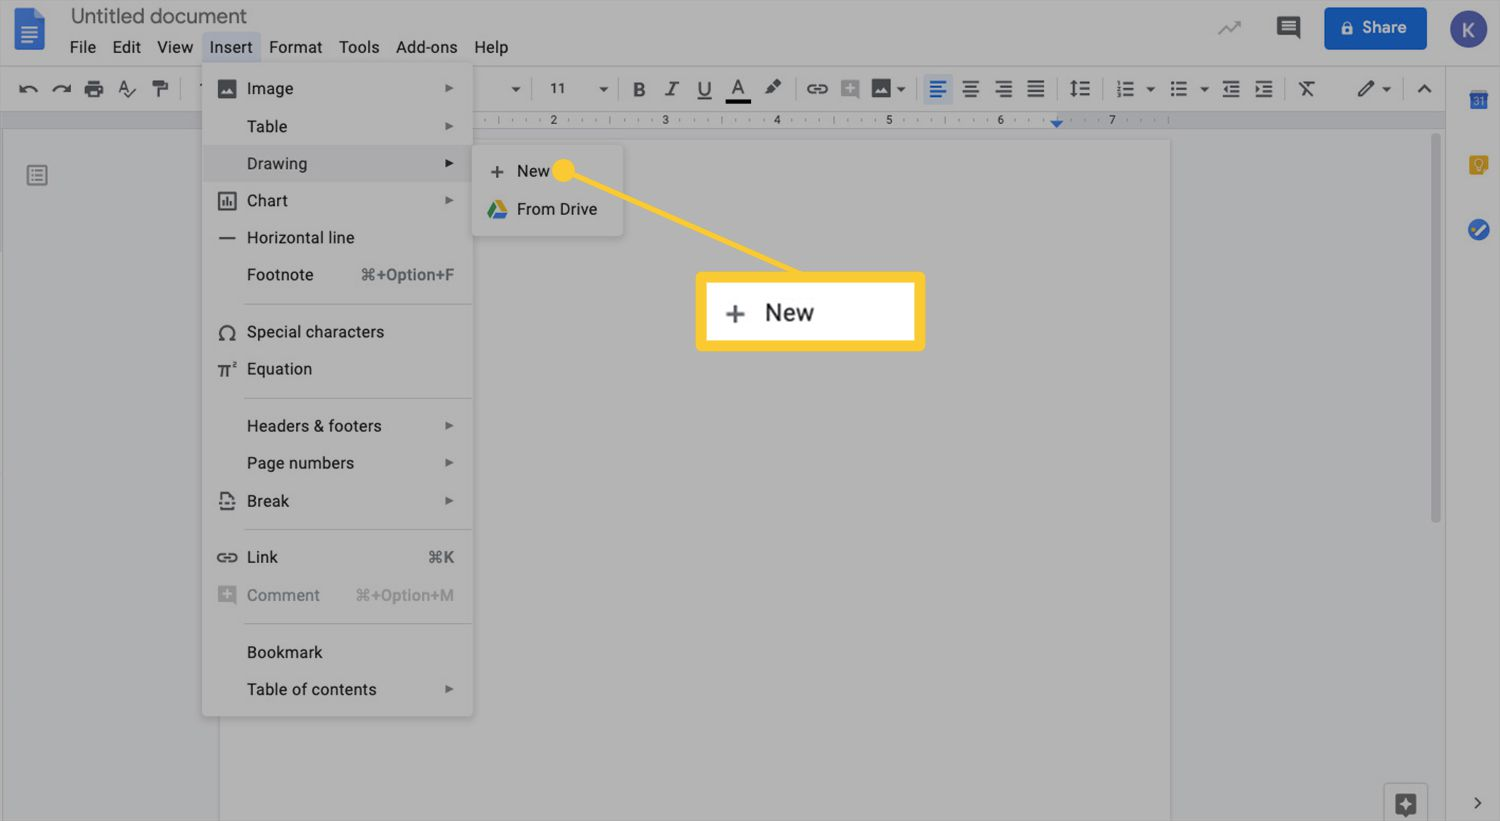 Insert menu with Drawing and New options